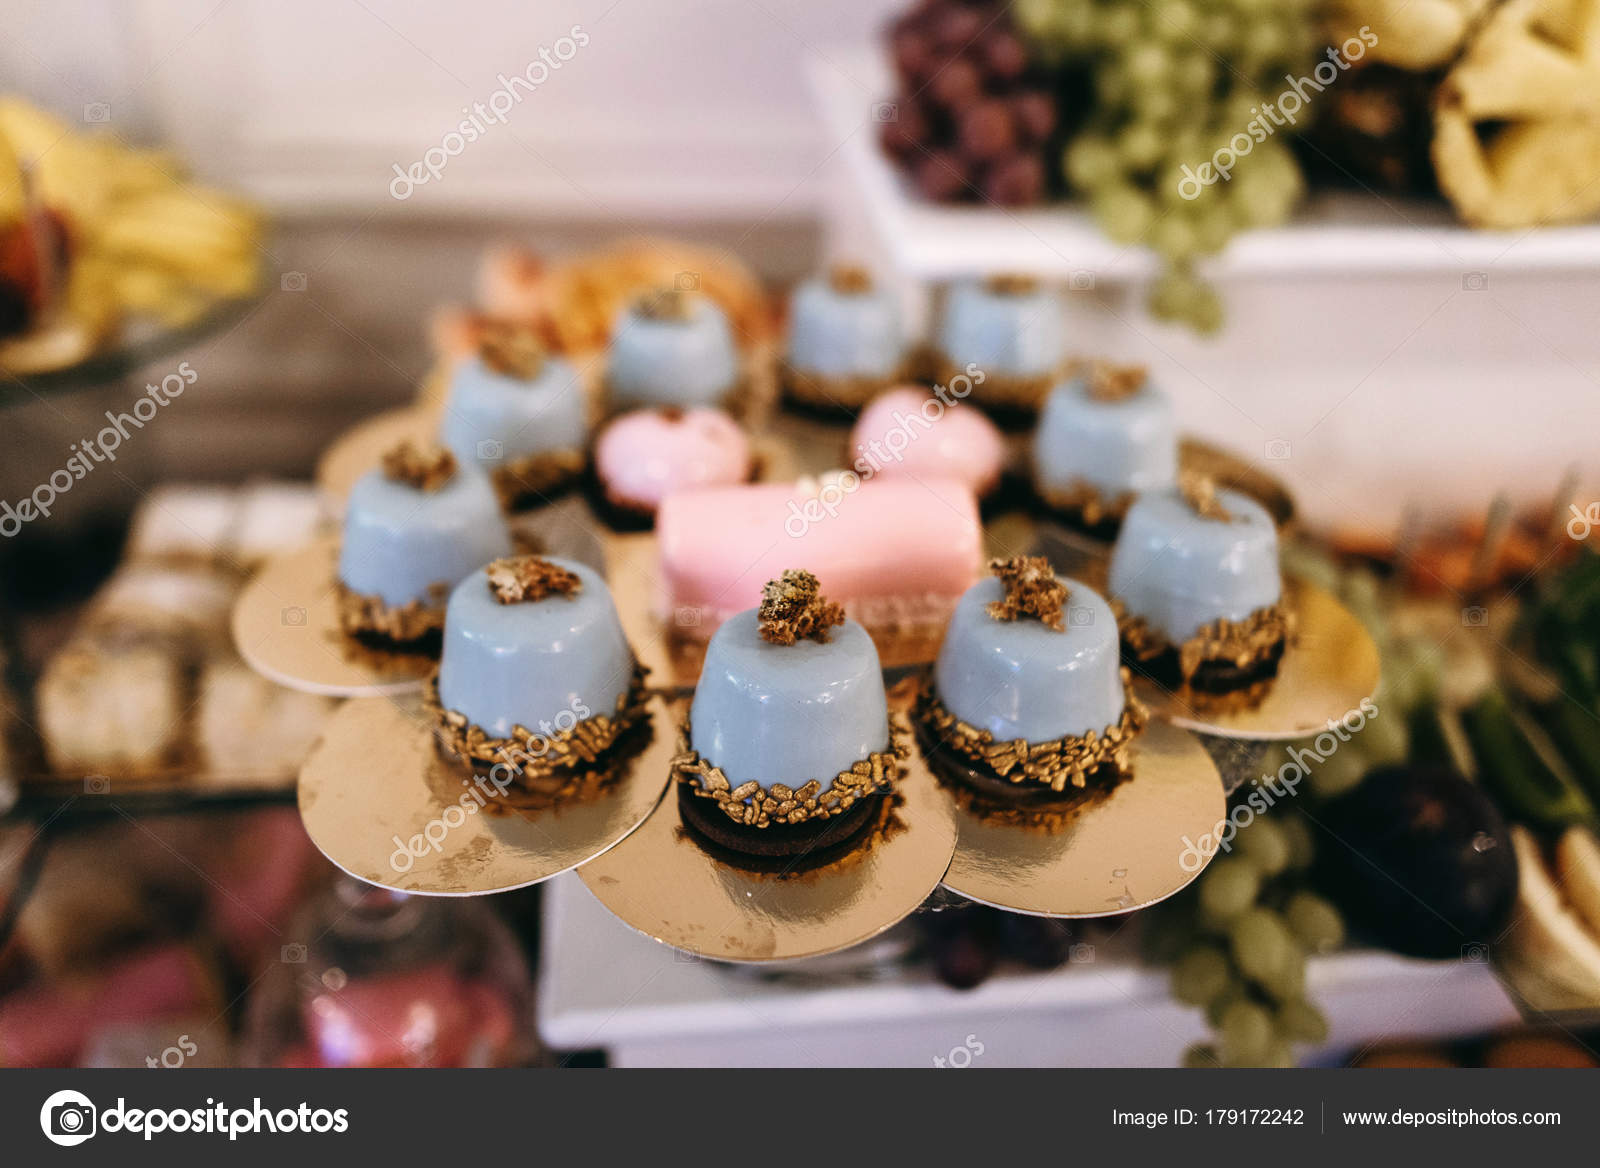 Wedding Sweet Table Desserts Cakes Beautiful Wedding Reception